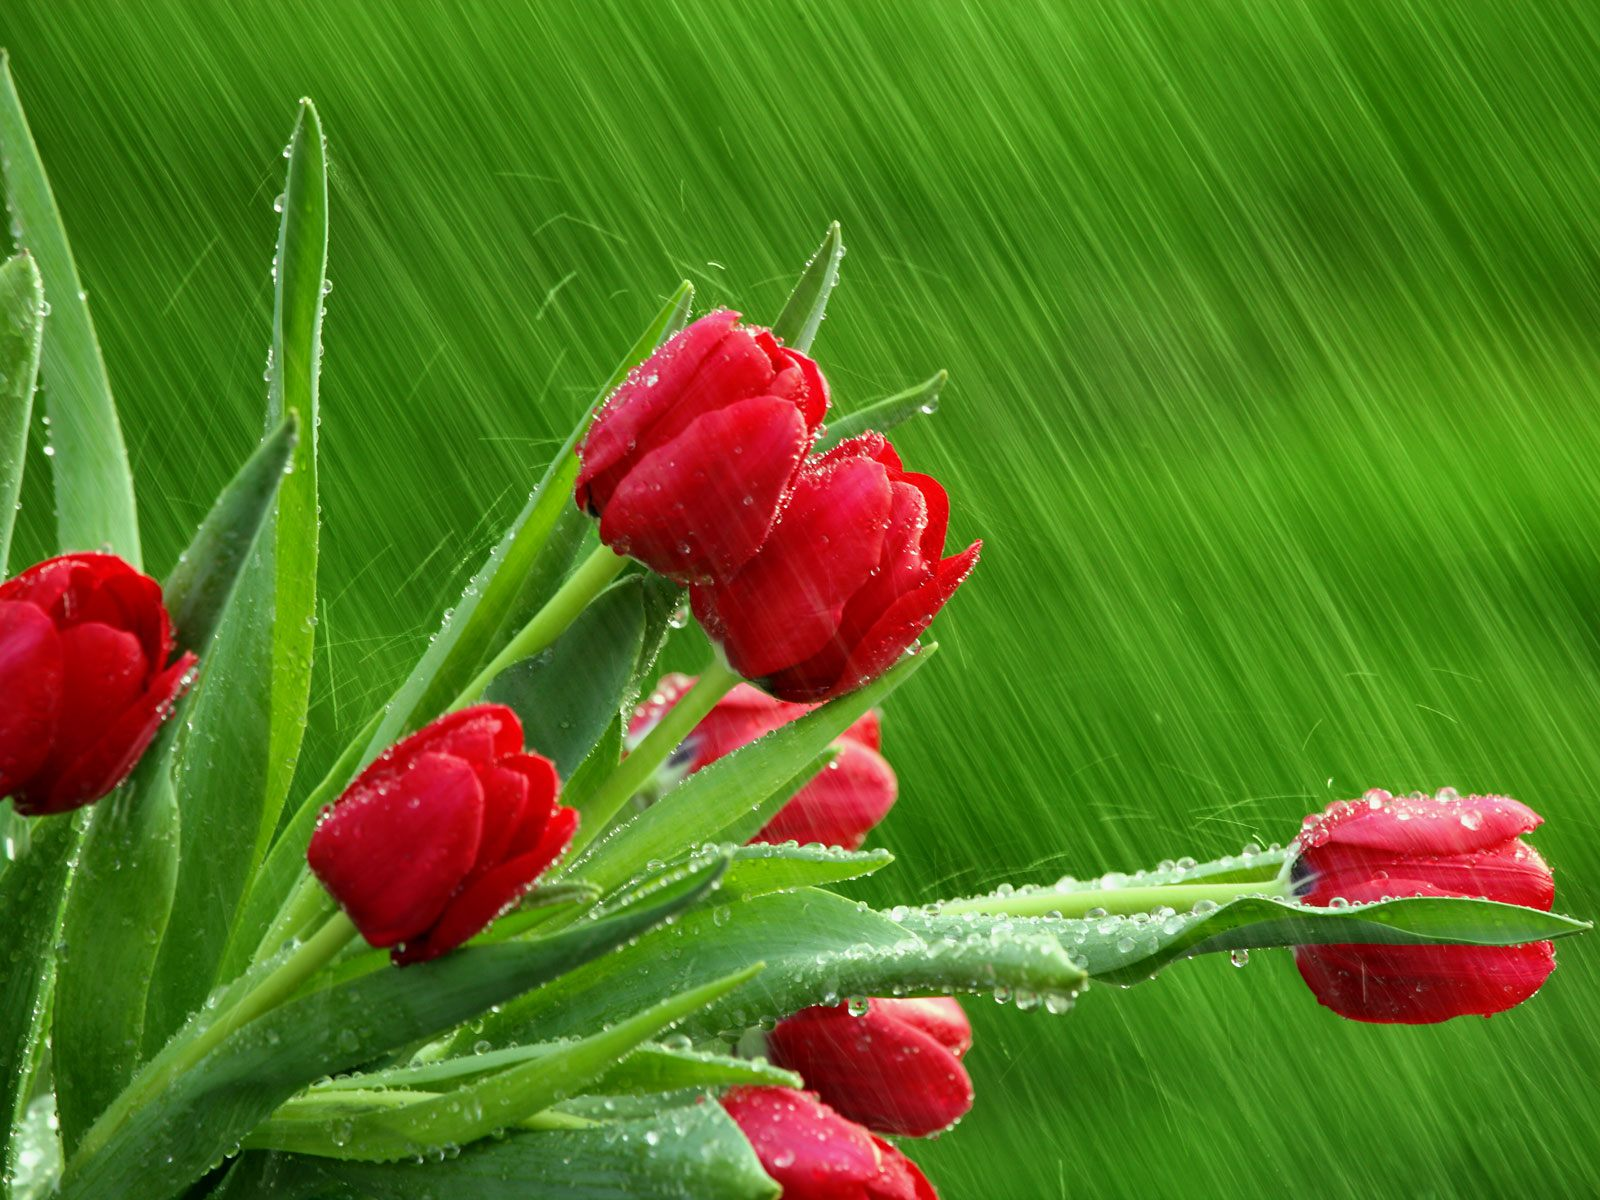 https://4.bp.blogspot.com/-2muUqZntYMc/TlGDJ6JmEiI/AAAAAAAAC8o/JuEB_cMaijQ/s1600/Beautiful%20rain%20wallpaper%203.jpg